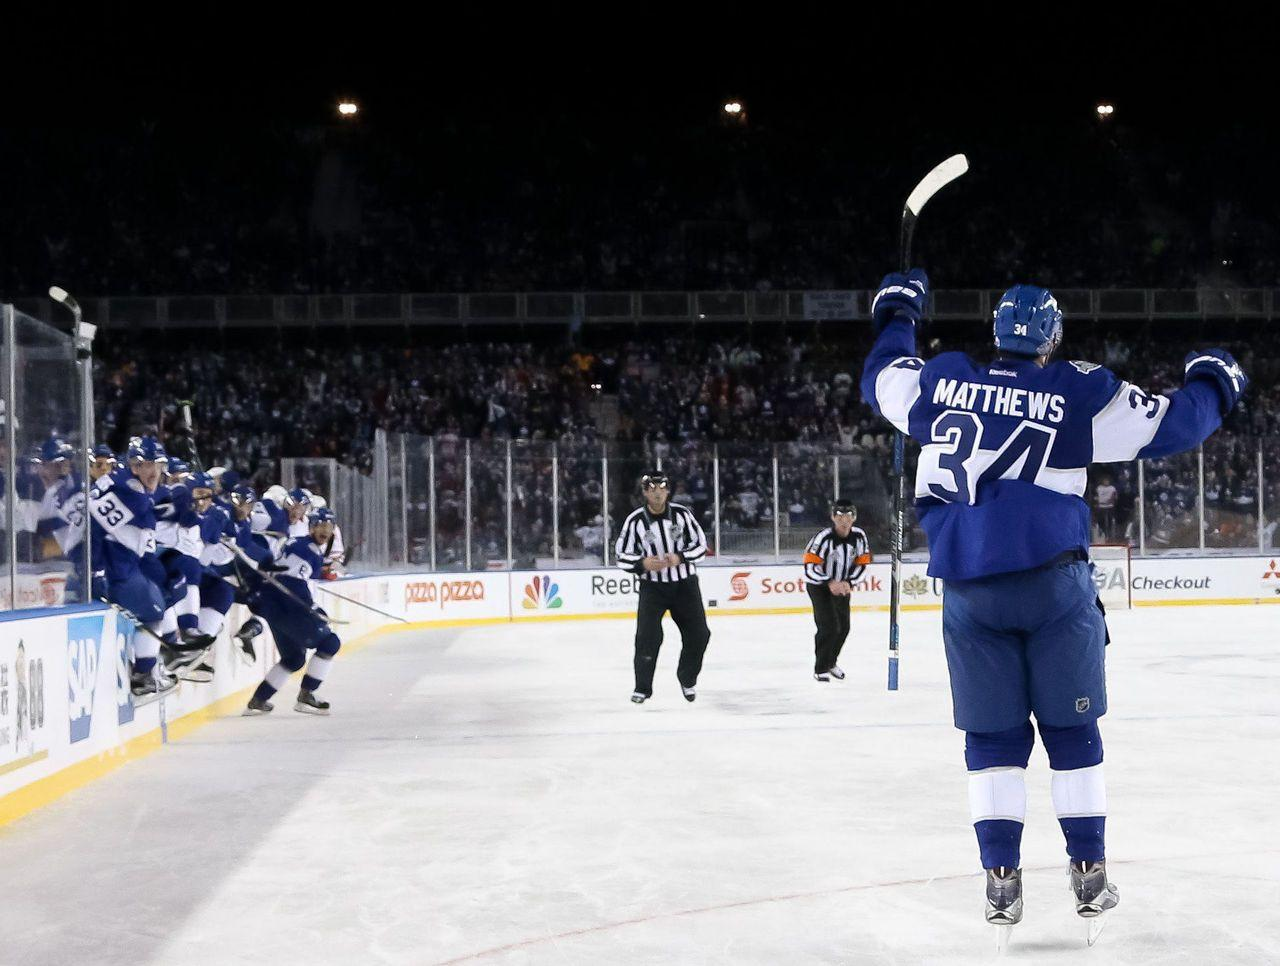 Auston Matthews celebrates his OT game winner at the 2017 NHL